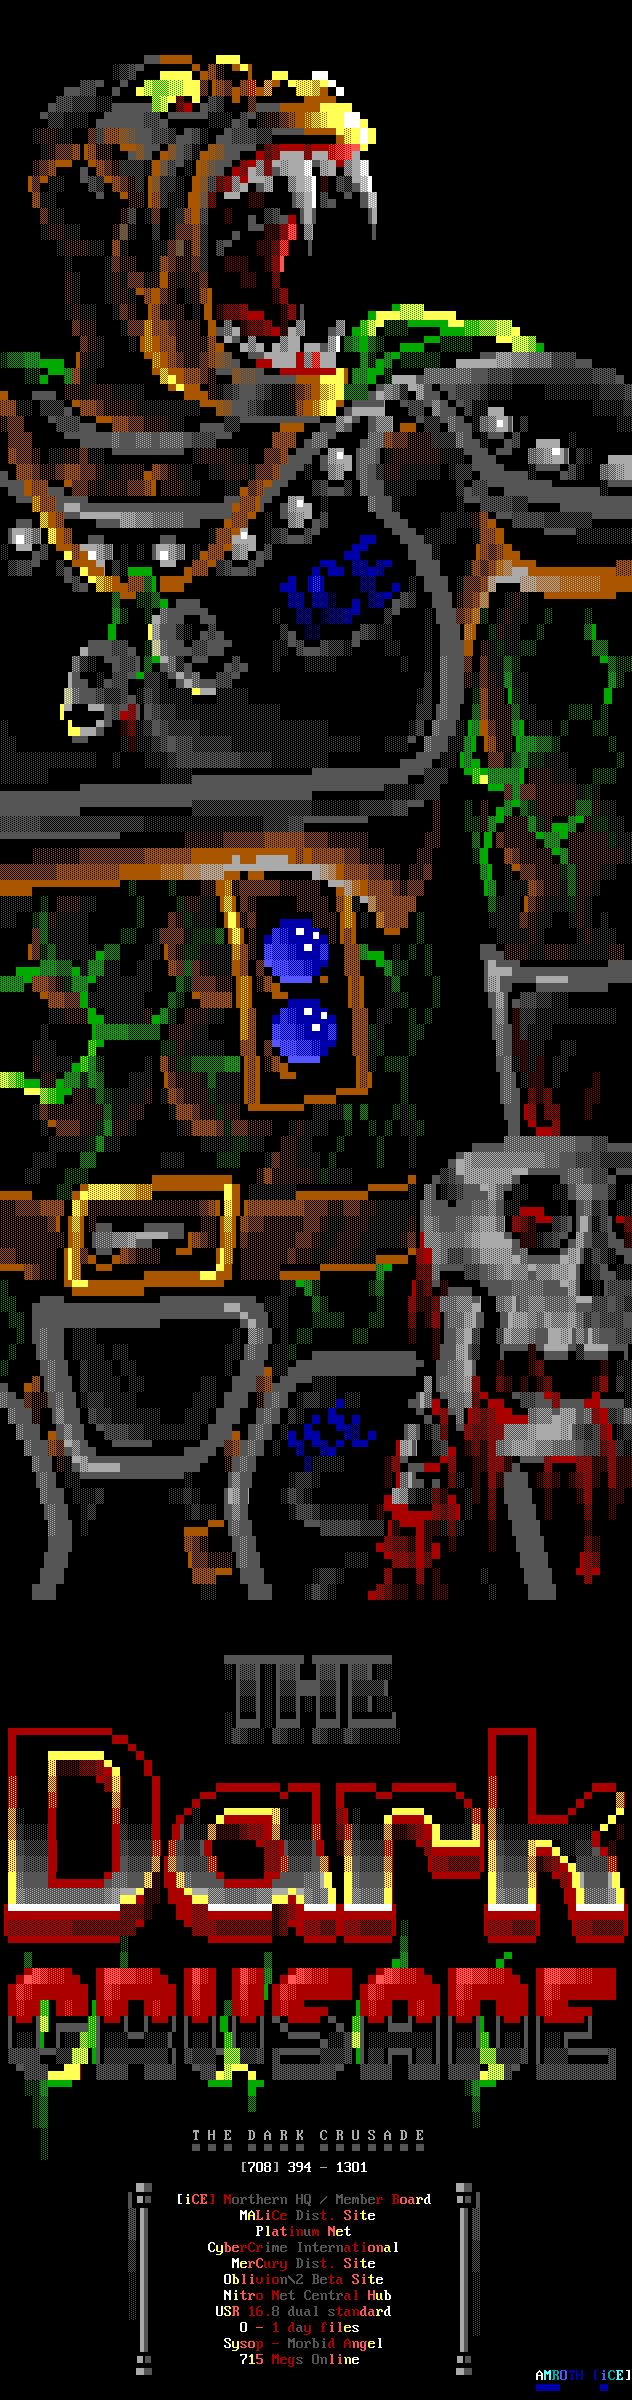 these groups were interesting (iCe) ansi art